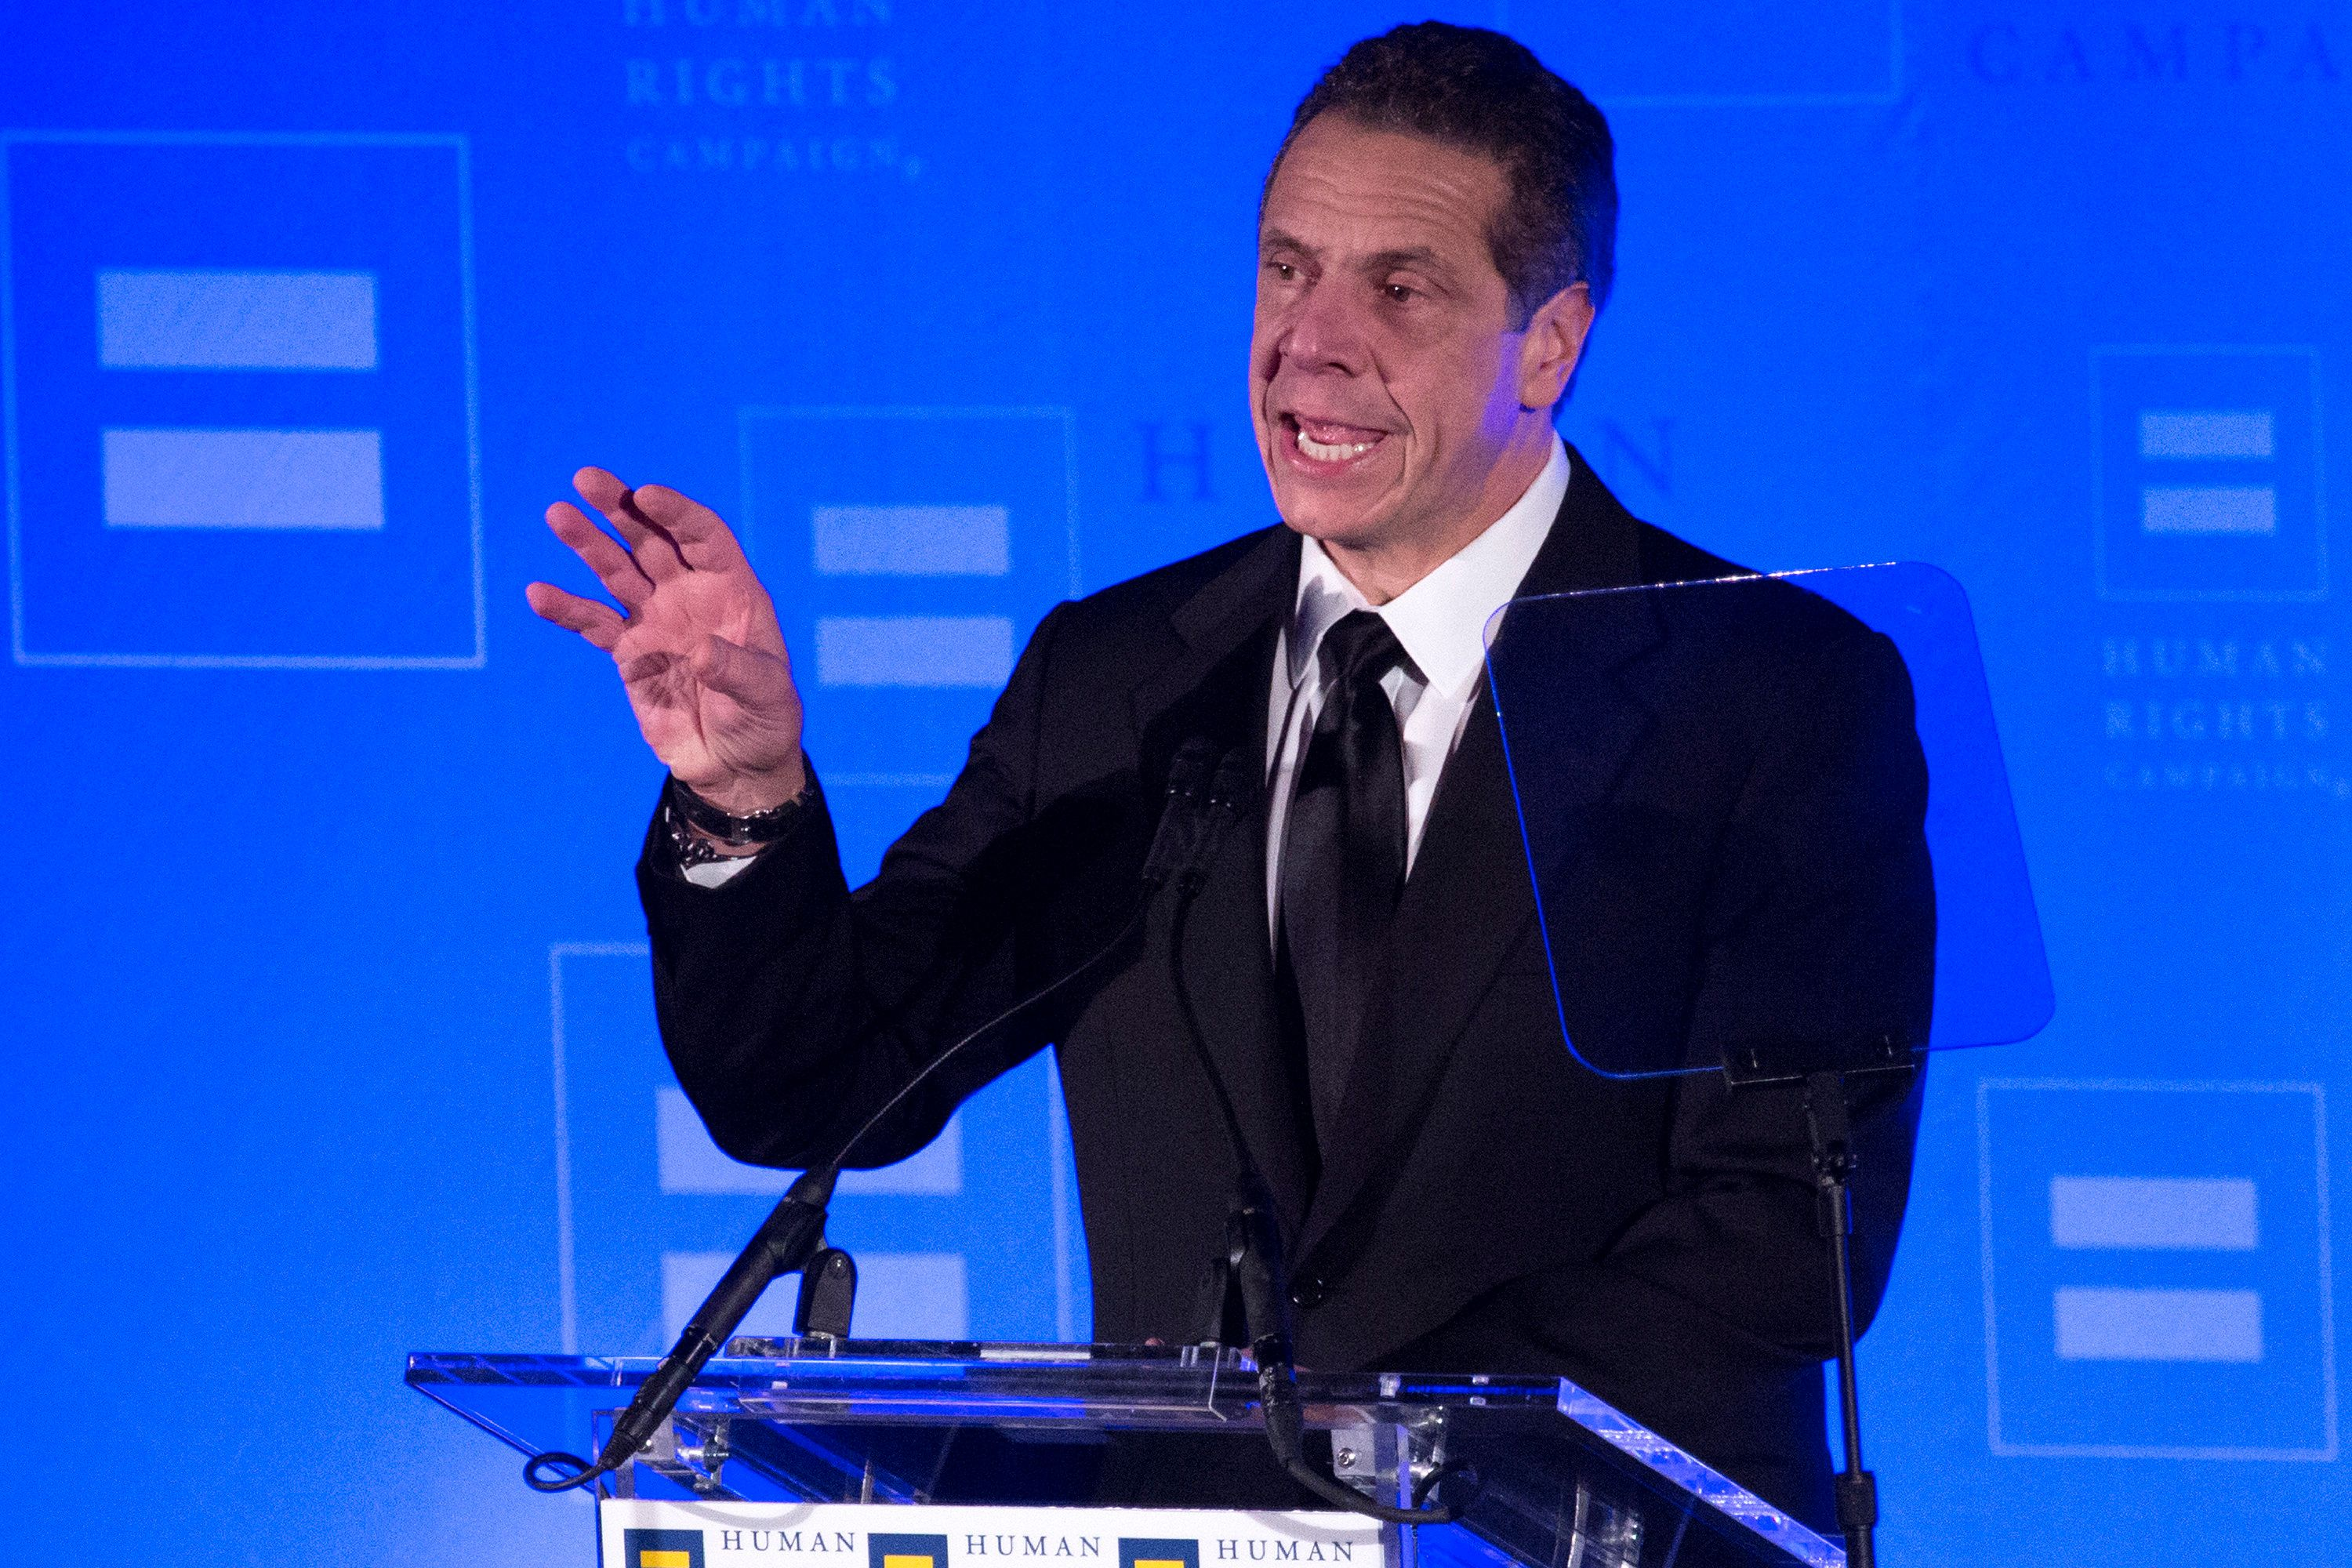 NEW YORK, NY - FEBRUARY 03:  Governor Andrew Cuomo opens the 17th Annual HRC Greater New York Gala at Marriott Marquis Broadway Ballroom on February 3, 2018 in New York City.  (Photo by Santiago Felipe/Getty Images)